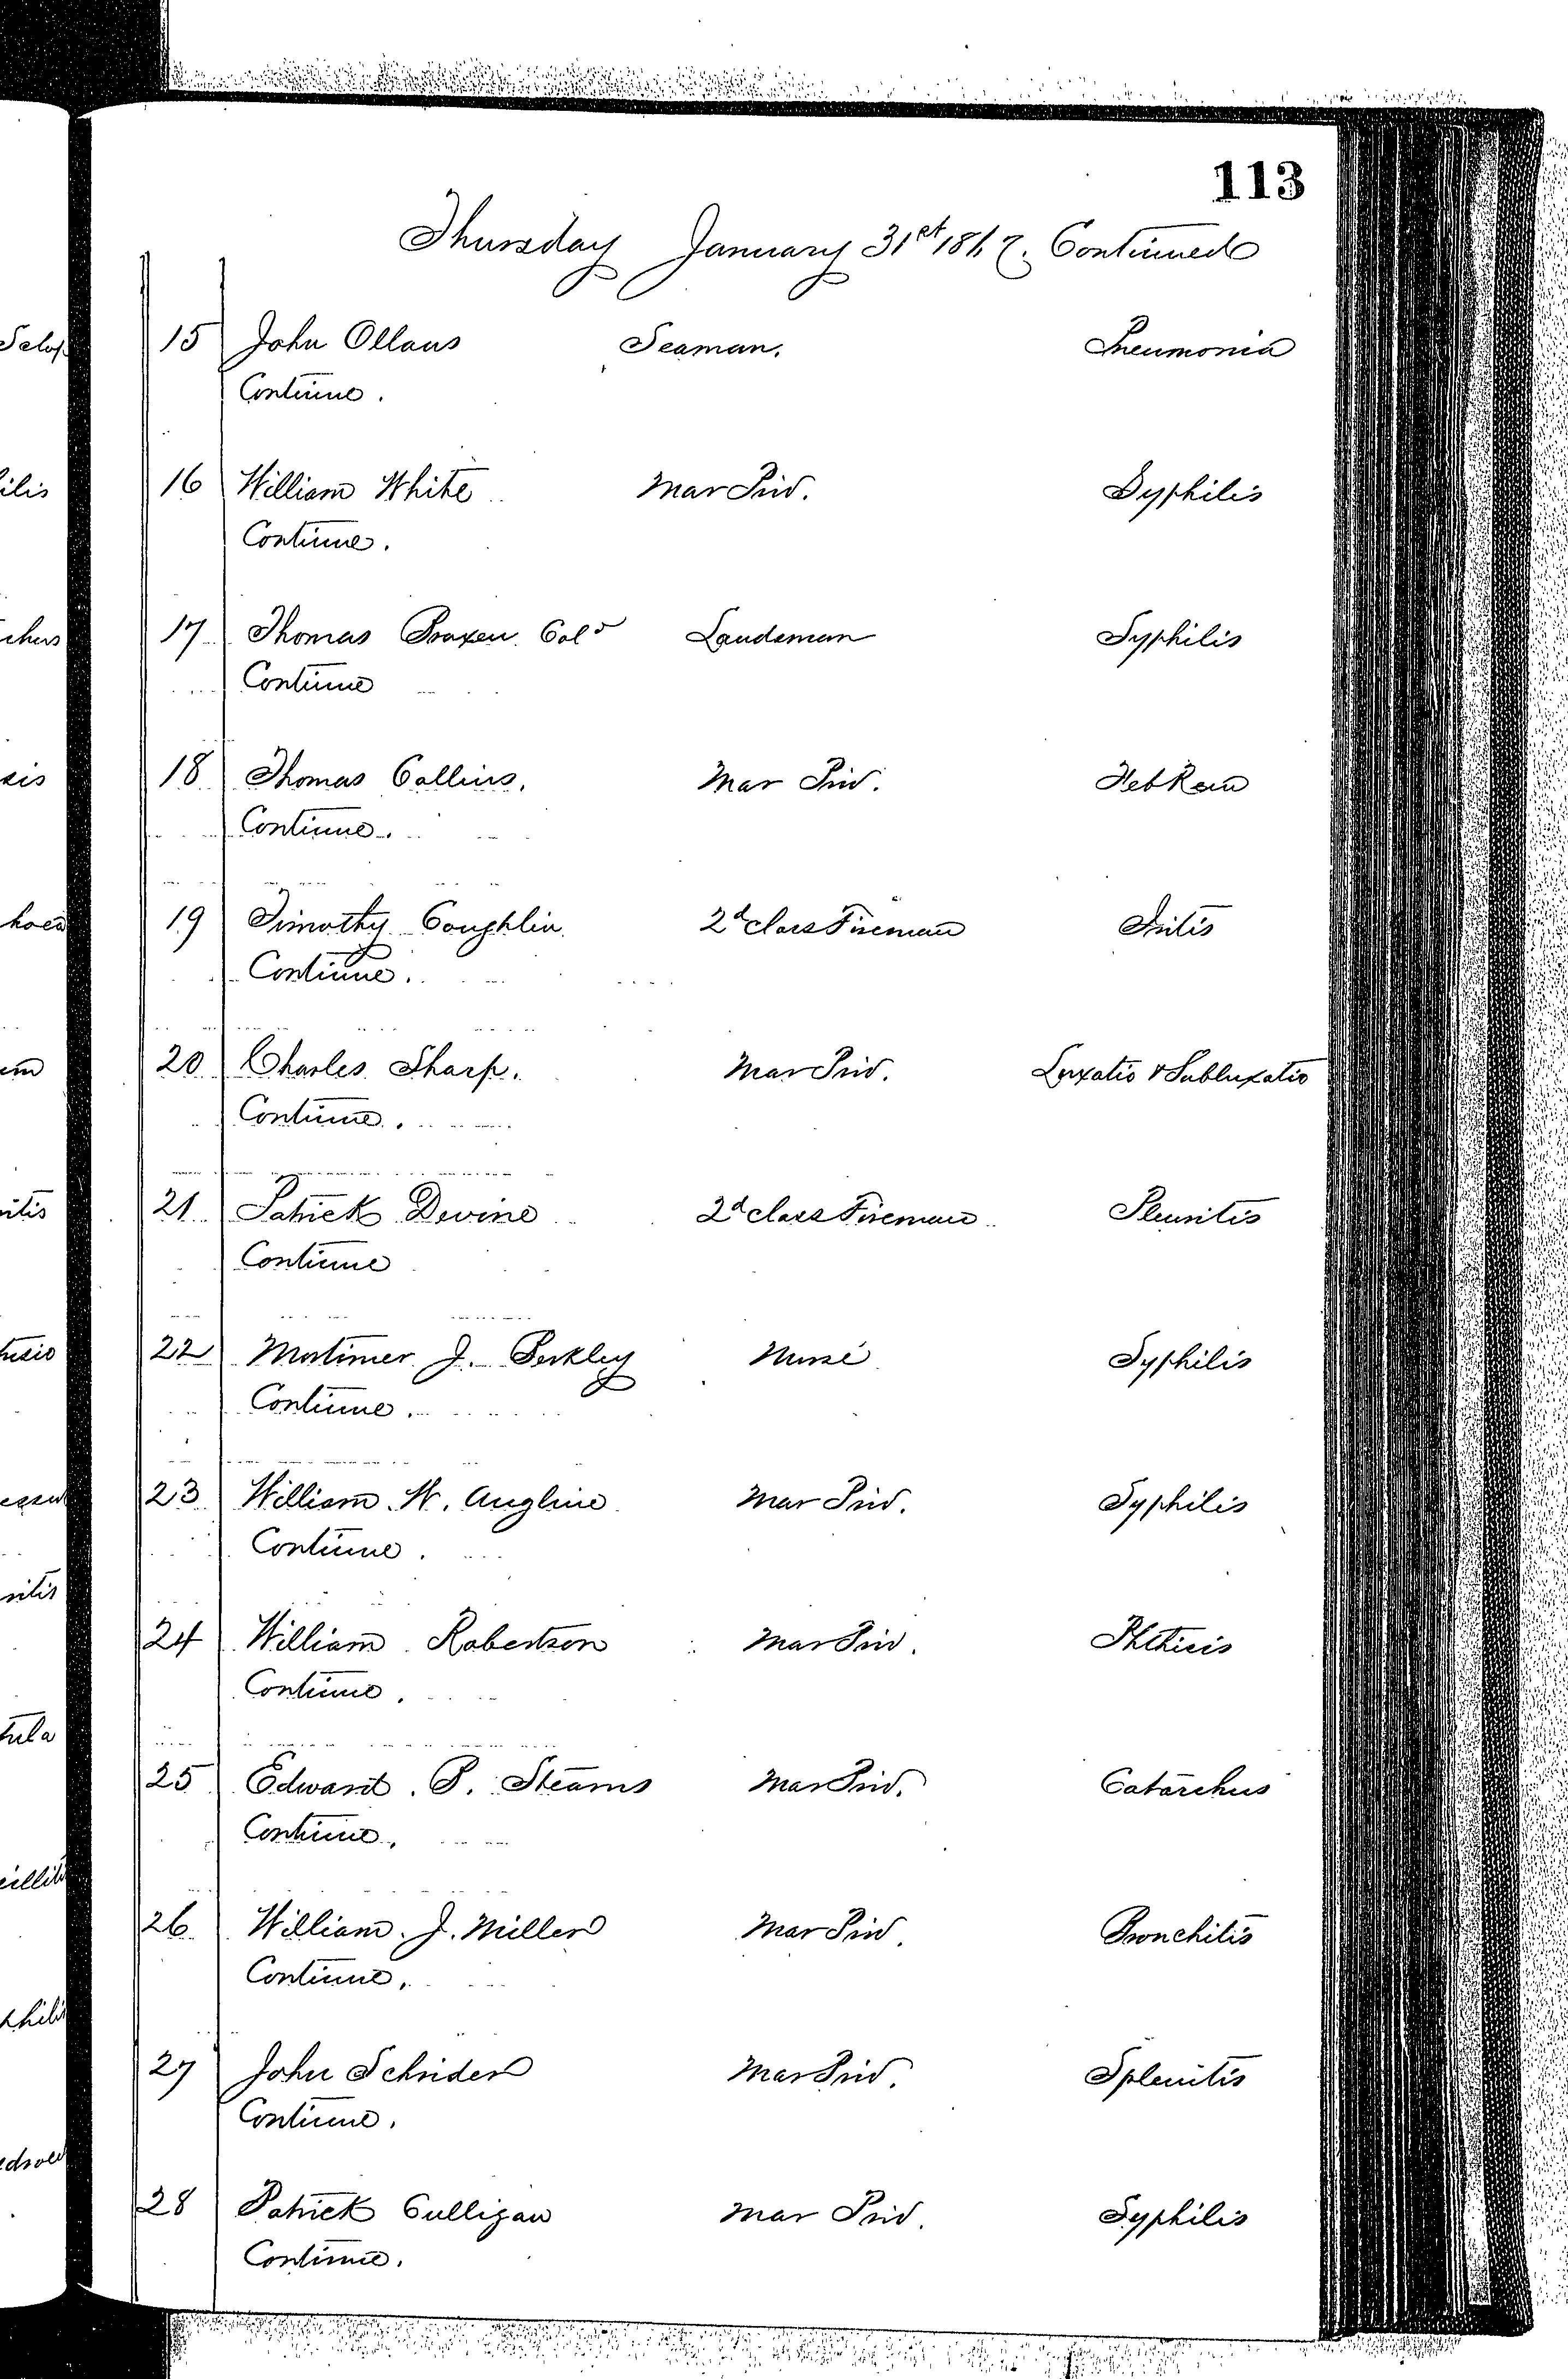 Patients in the Naval Hospital, Washington DC, on January 31, 1867 - Page 2 of 3, in the Medical Journal, October 1, 1866 to March 20, 1867